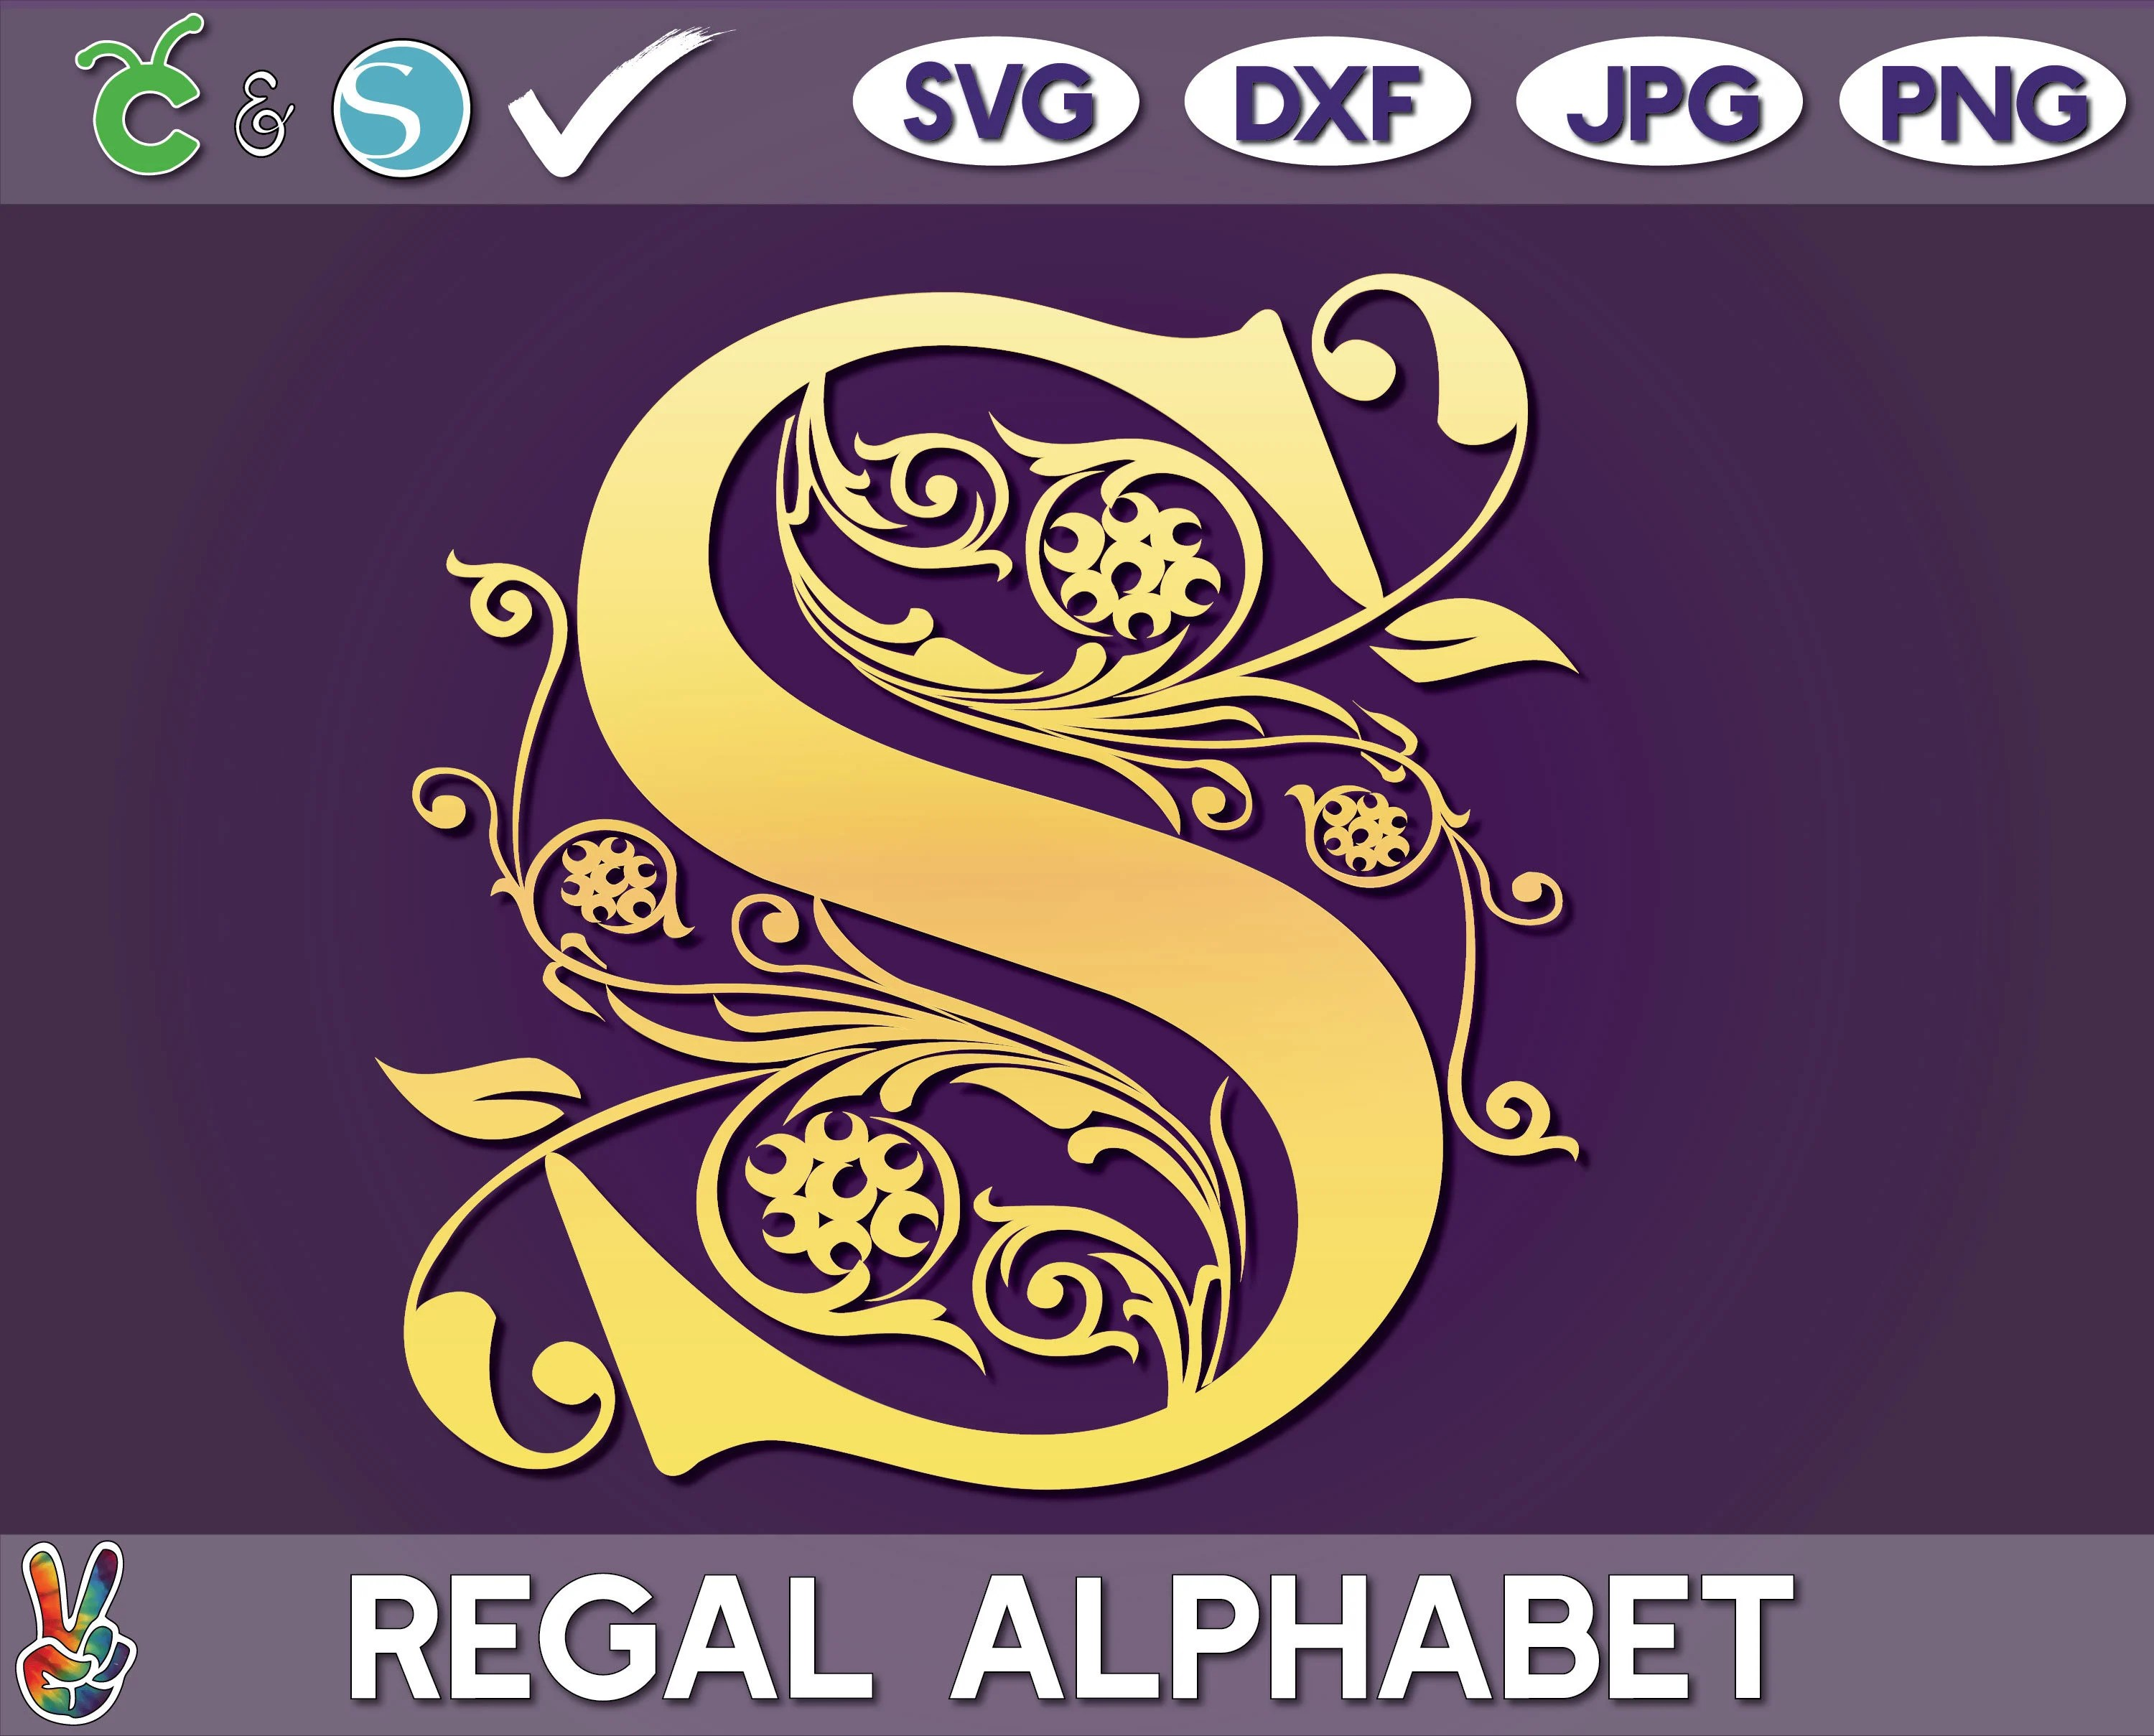 Spiegel Online Shop Logo Png Transparent Svg Vector Freebie Supply Regal Monogram Svg Monogram Vector Cricut Cut Files Family Monogram Silhouette Cameo Ready Full Set Regal Fixed Set Png Dxf Jpg